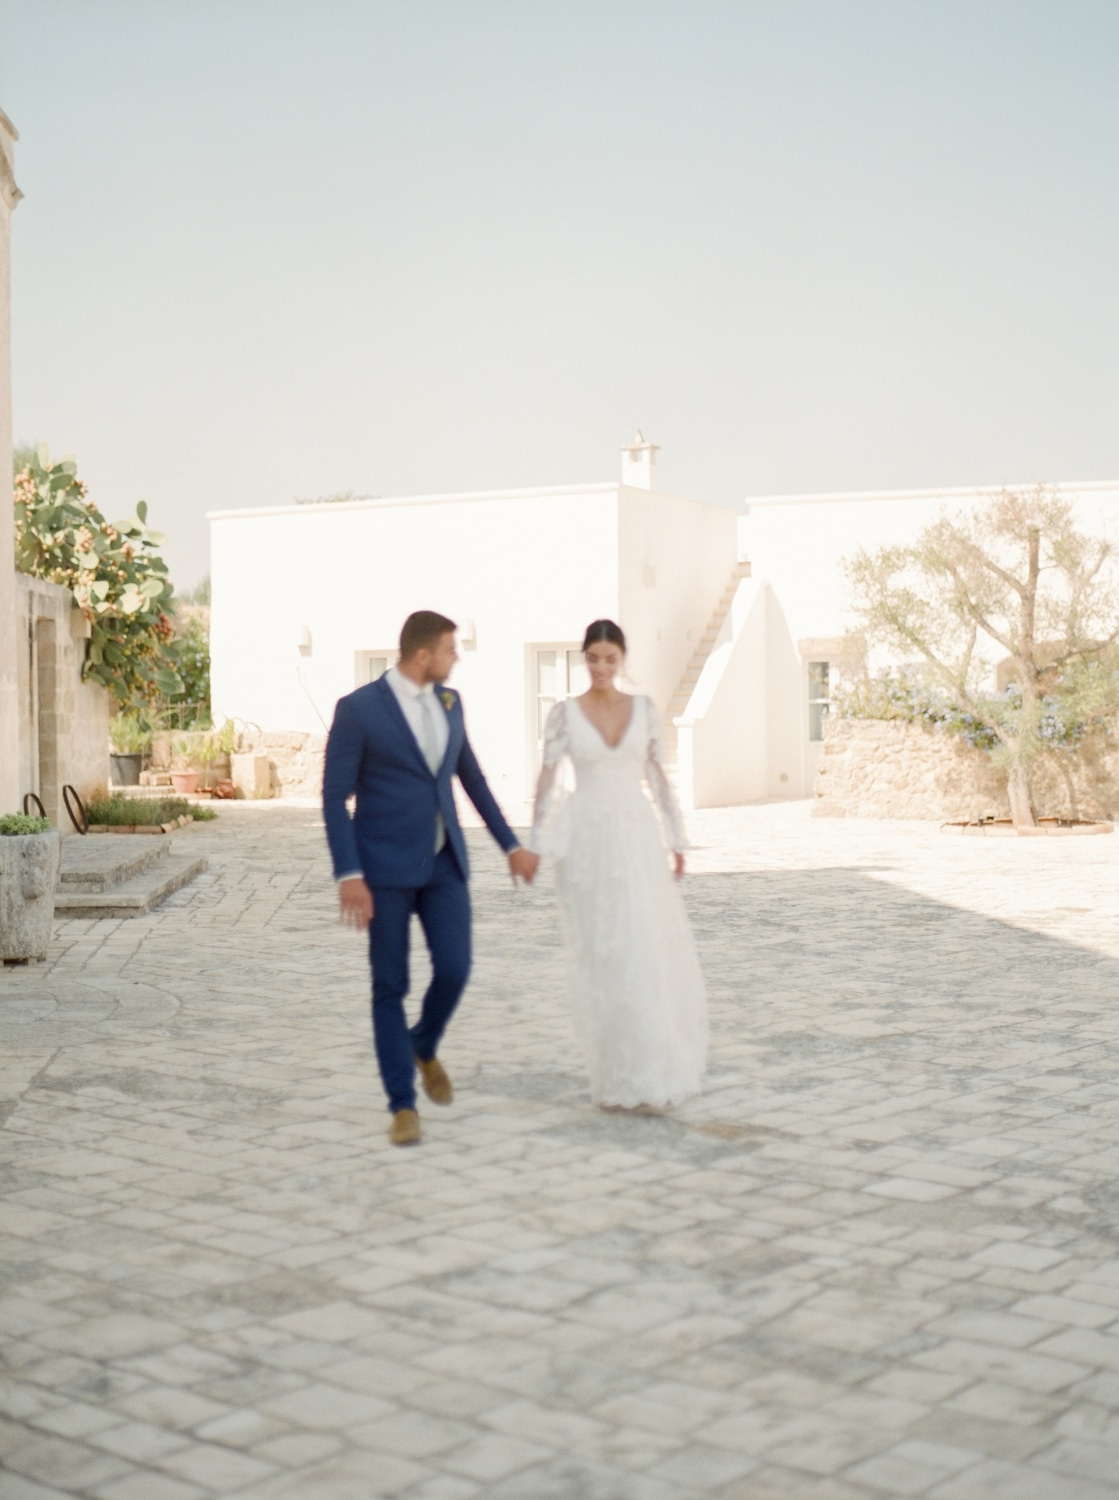 bride and groom holding hands walking on cobblestone road